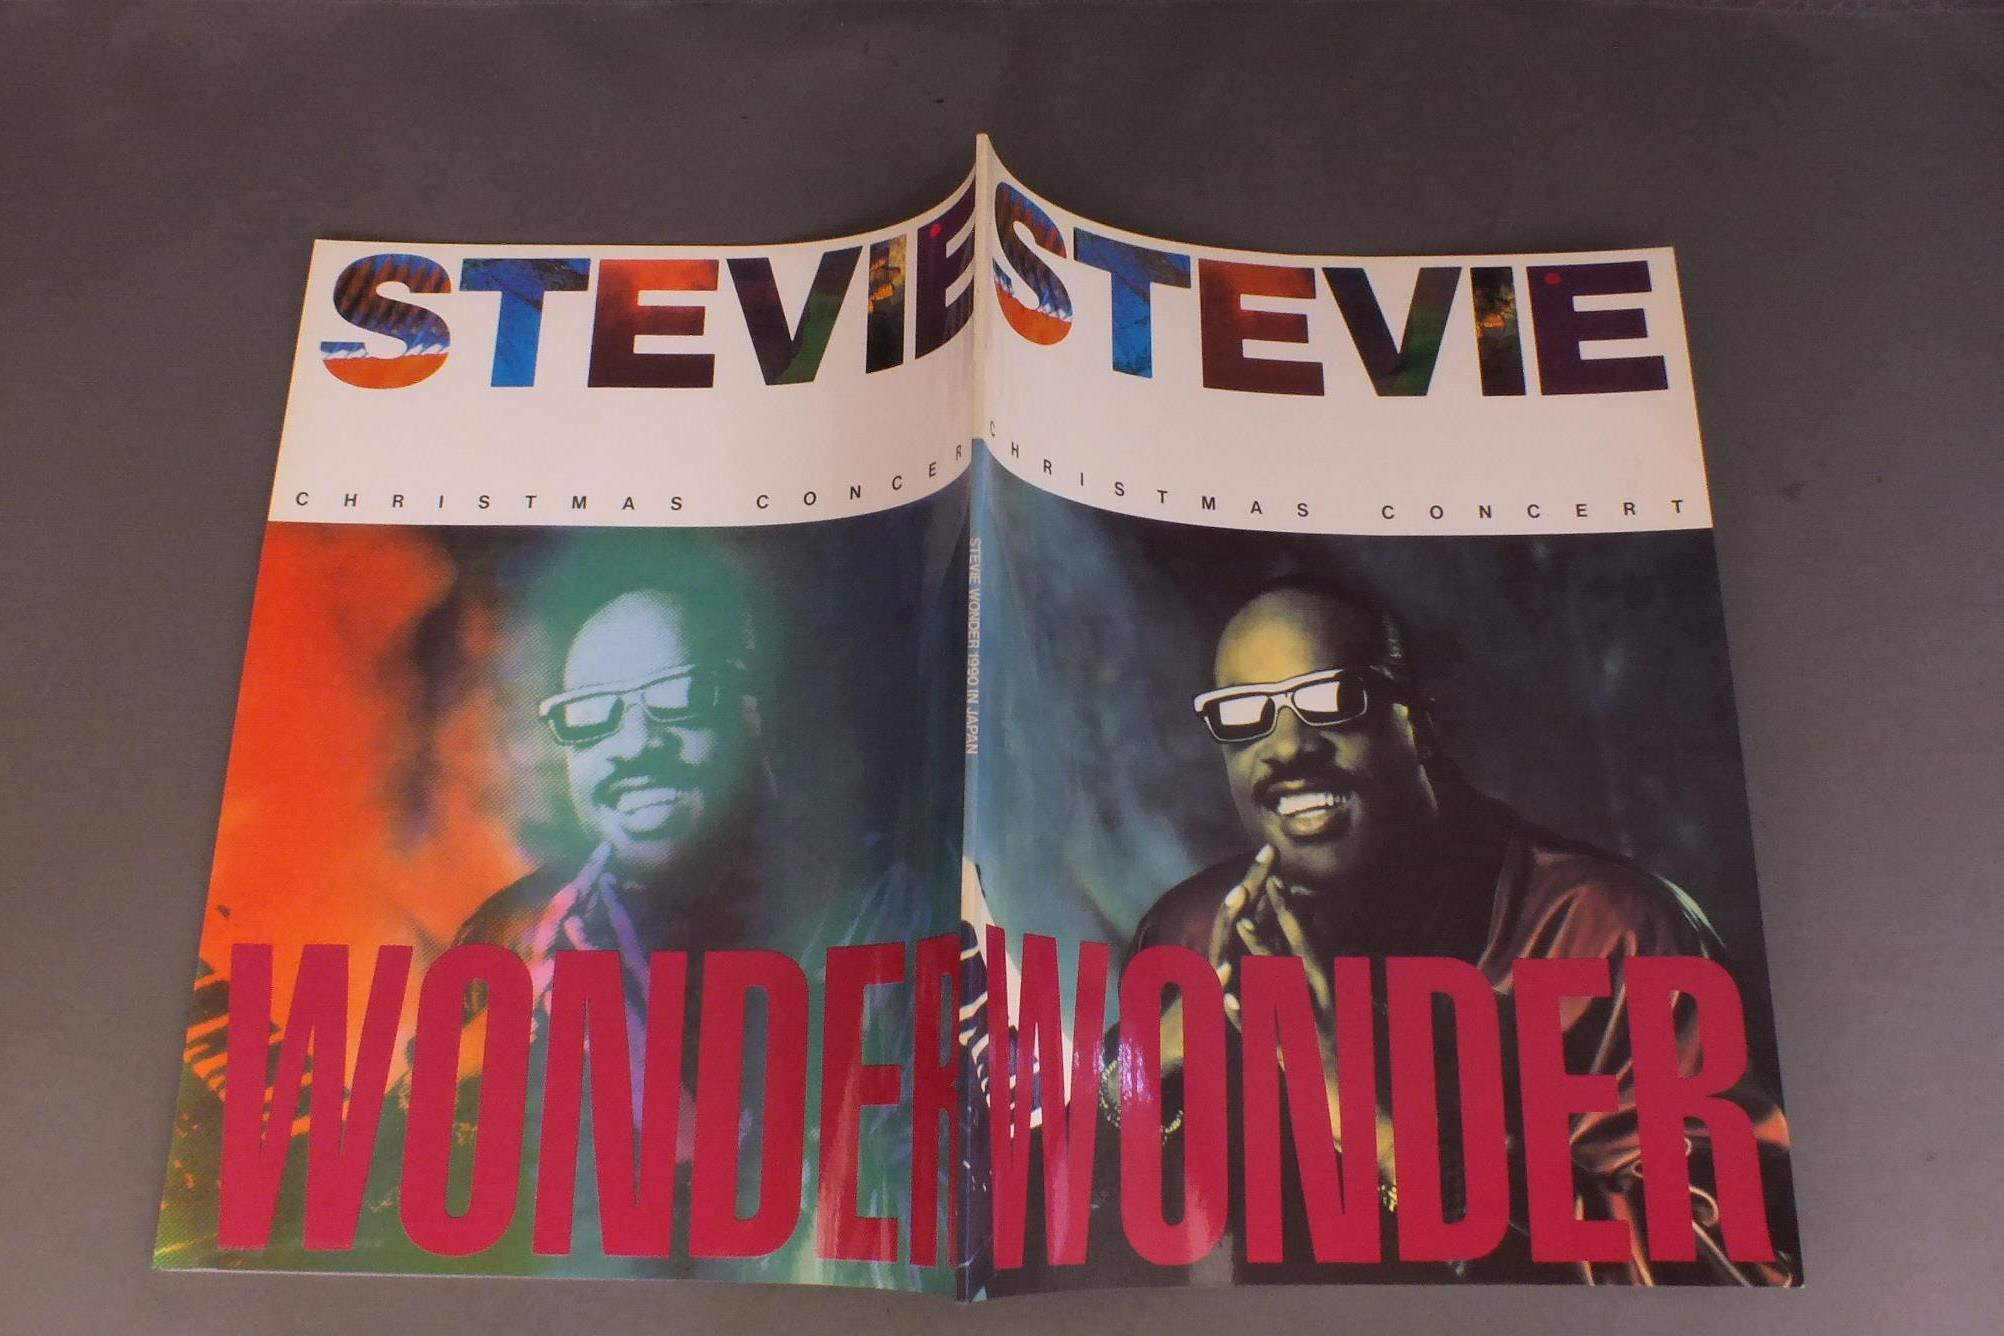 STEVIE WONDER - CHRISTMAS CONCERT 1990 IN JAPAN PROGRAM - Concert Program